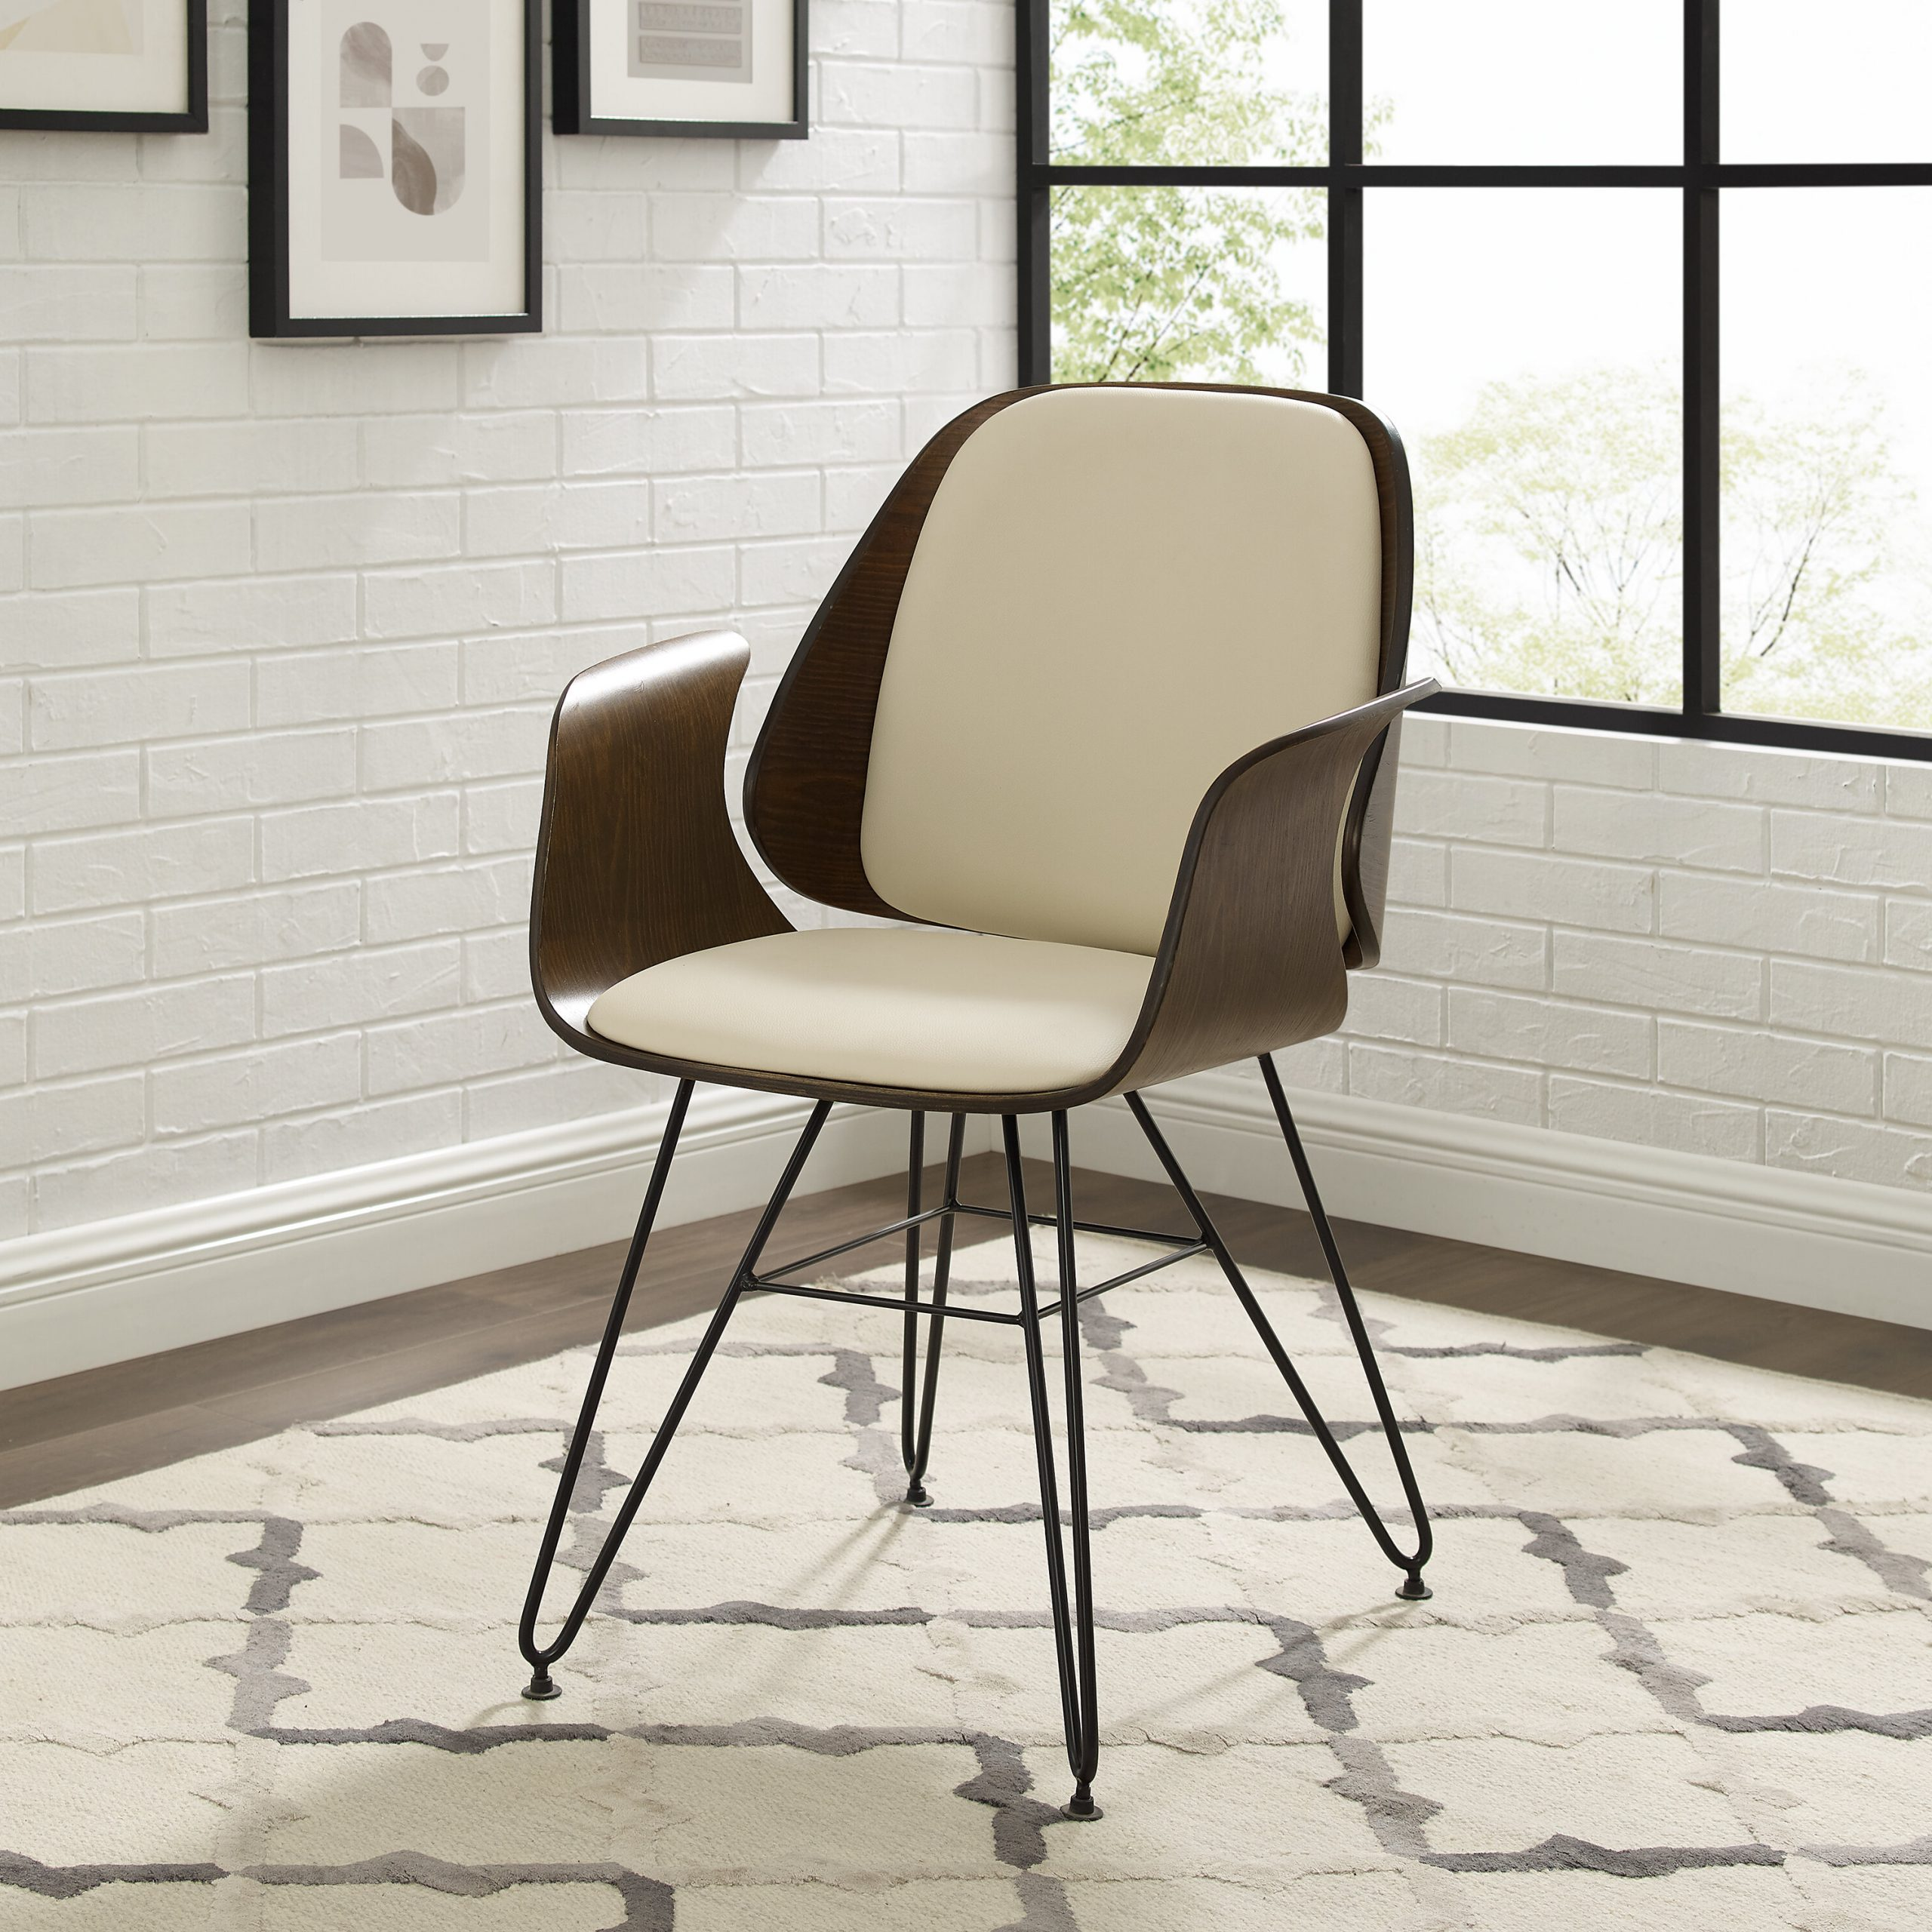 Ansar Faux Leather Barrel Chairs Regarding Trendy Faux Leather Accent Chairs Under $150 You'll Love In (View 14 of 20)